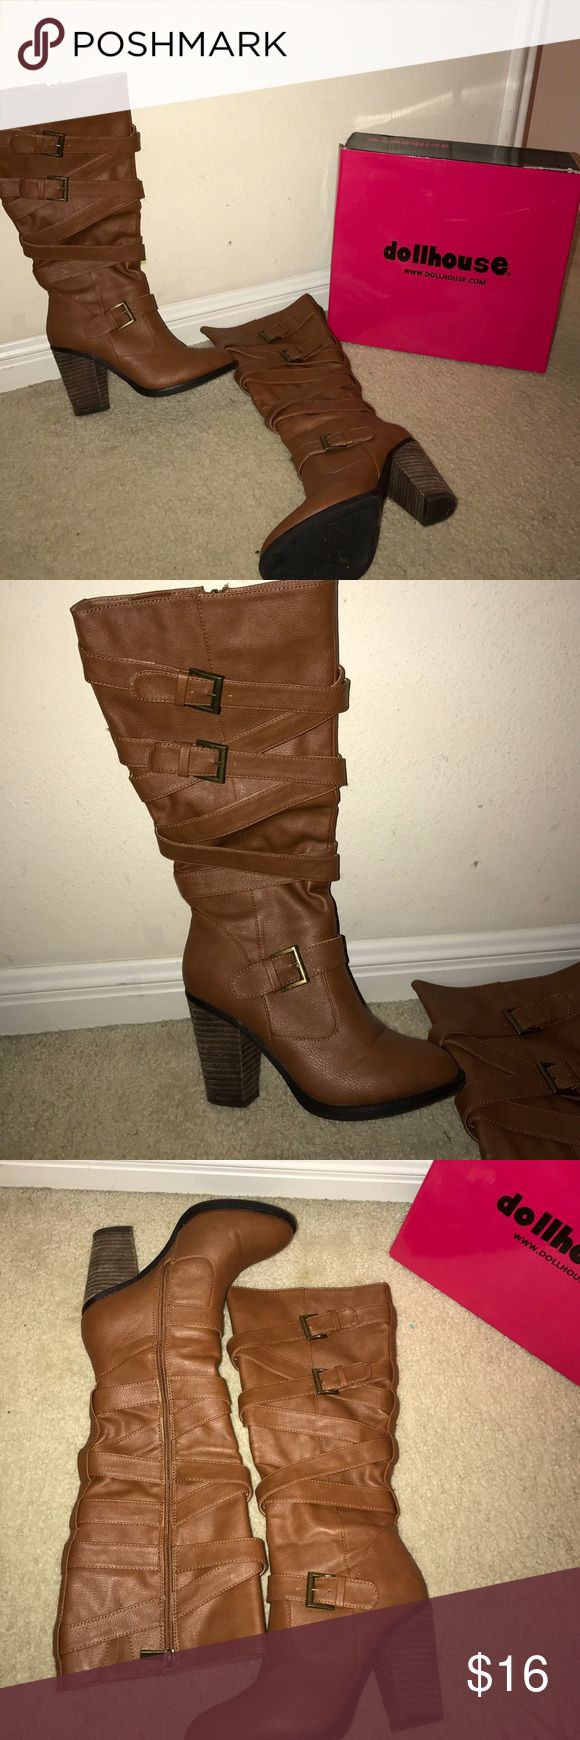 Dollhouse - Brown Heel Boots This adorable sip up almost to the knee boots have been used twice. They will adorable with dresses / leggings / skinny jean! Very comfortable! Dollhouse Shoes Heeled Boots